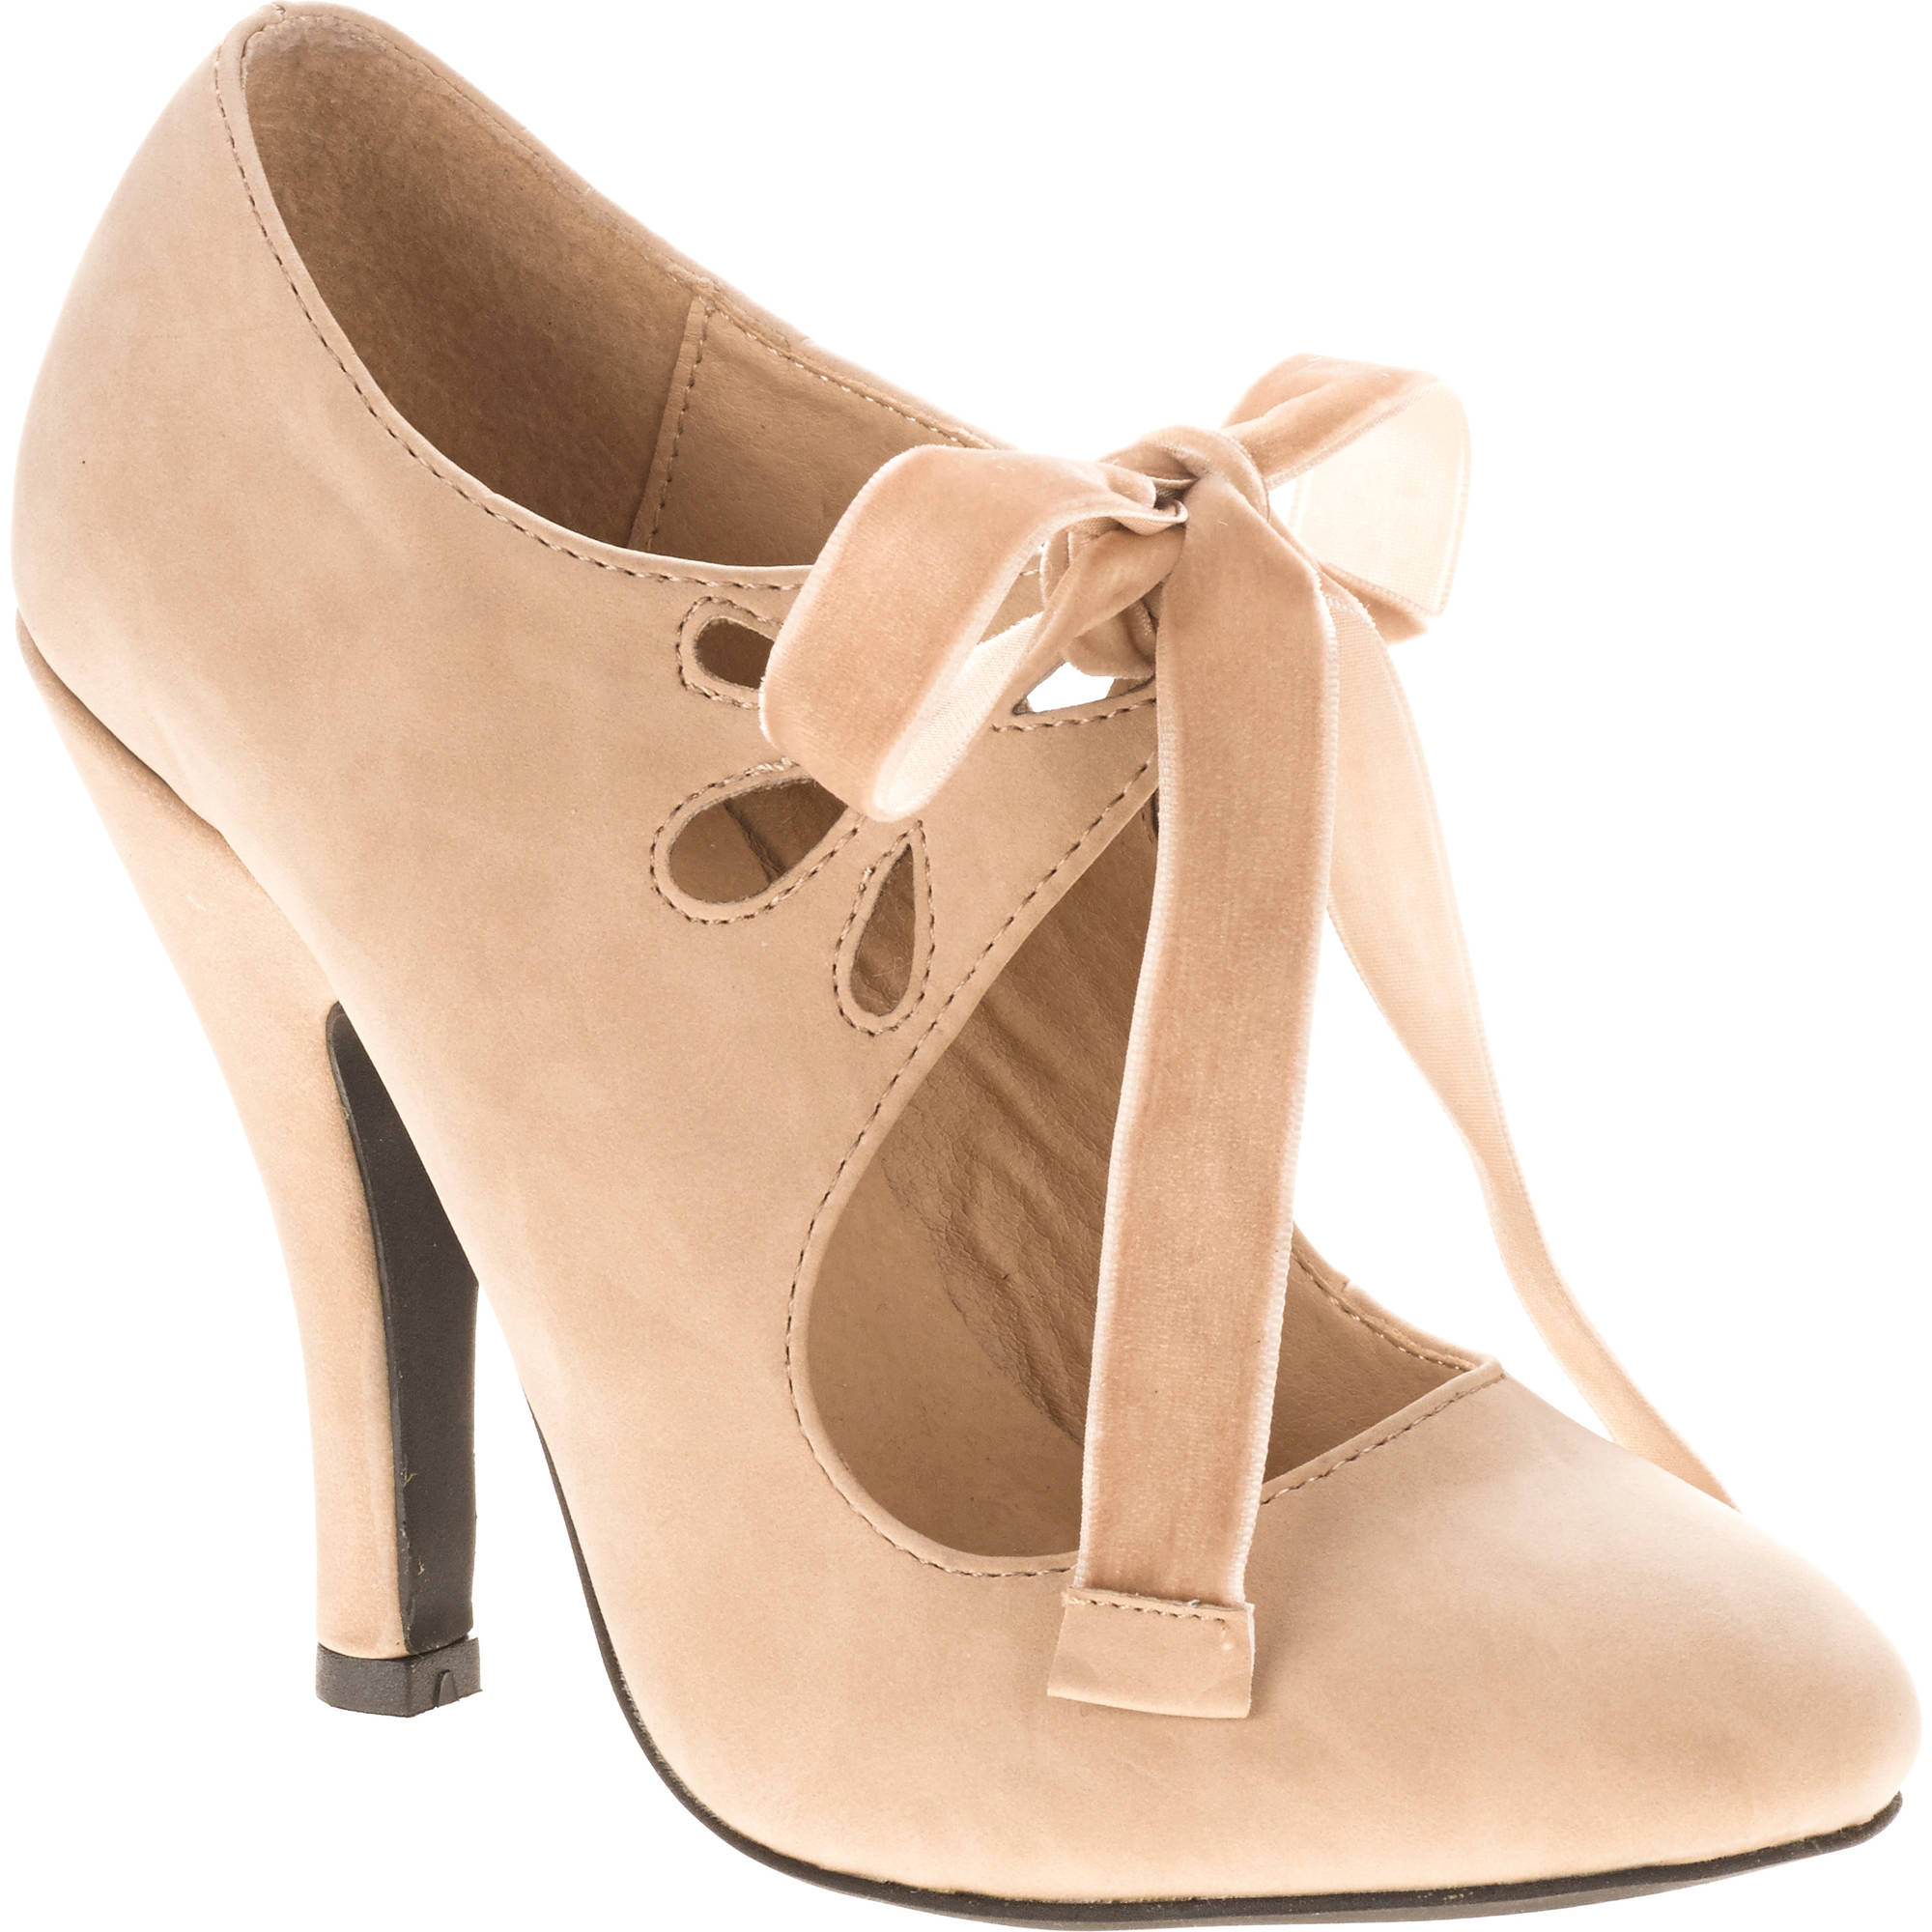 Mo Mo Women's Halo Mary Jane Pump with Velvet Bow